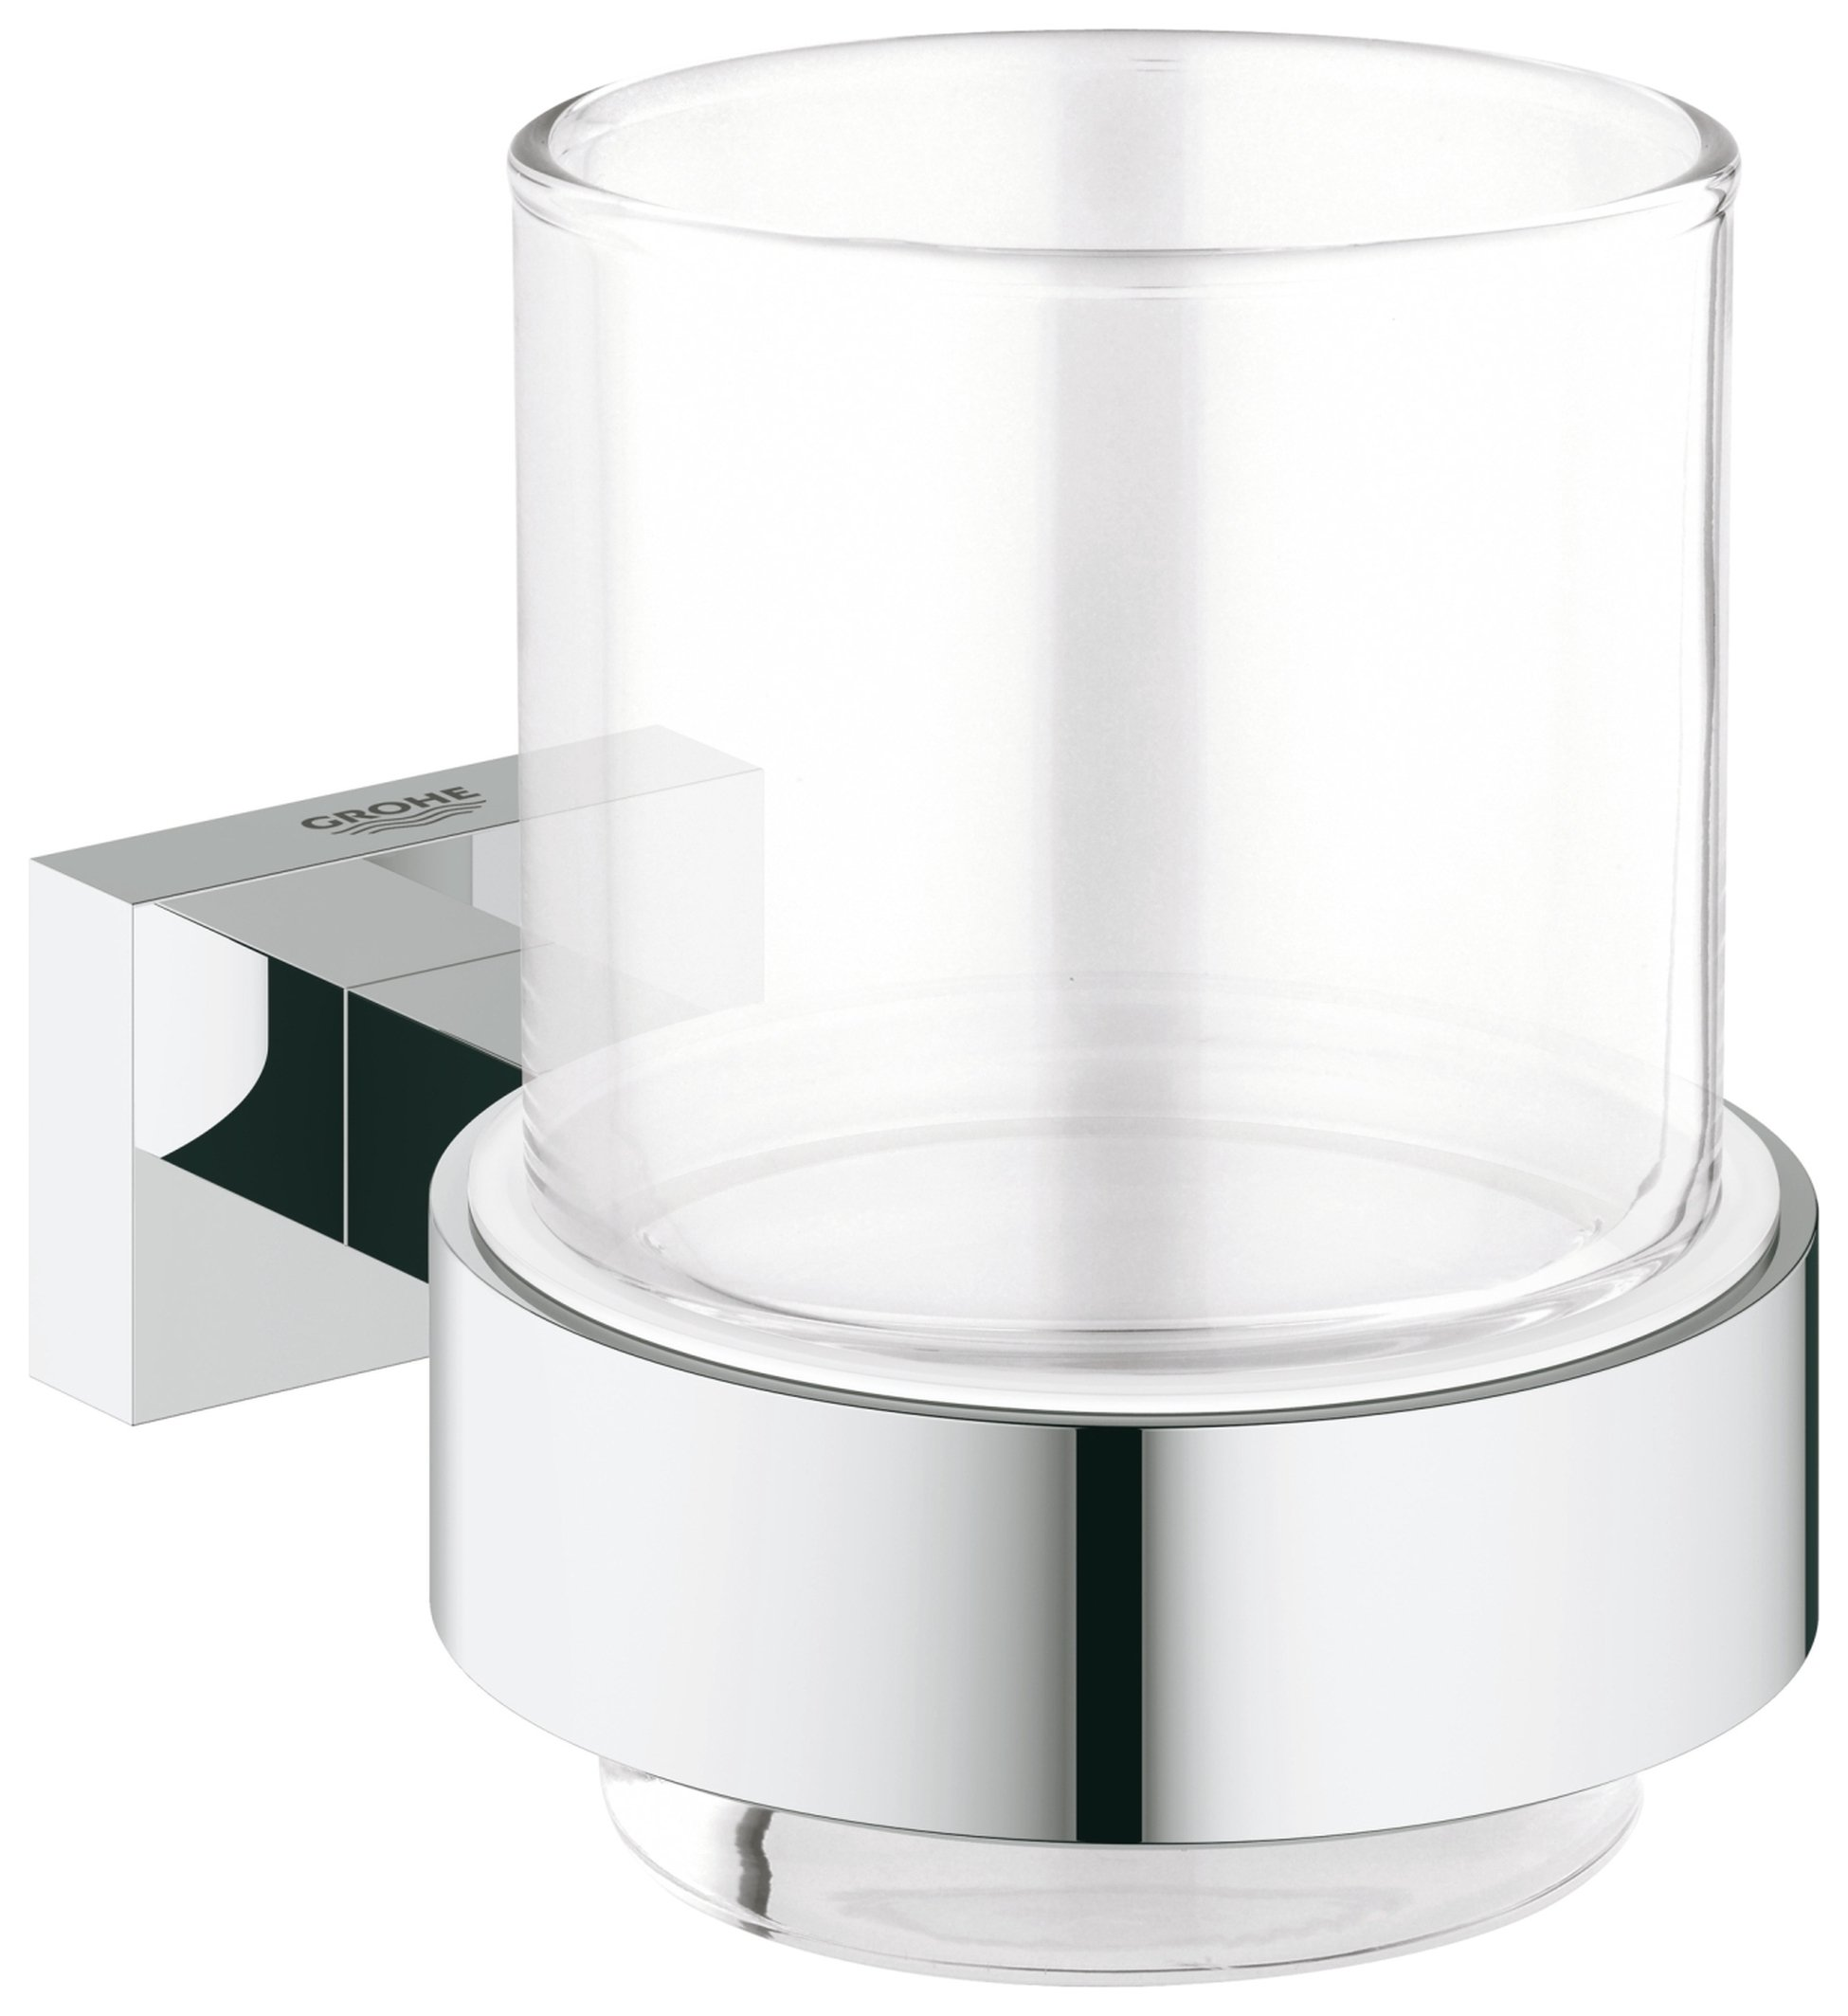 Image of Grohe Essentials - Cube Glass with Holder